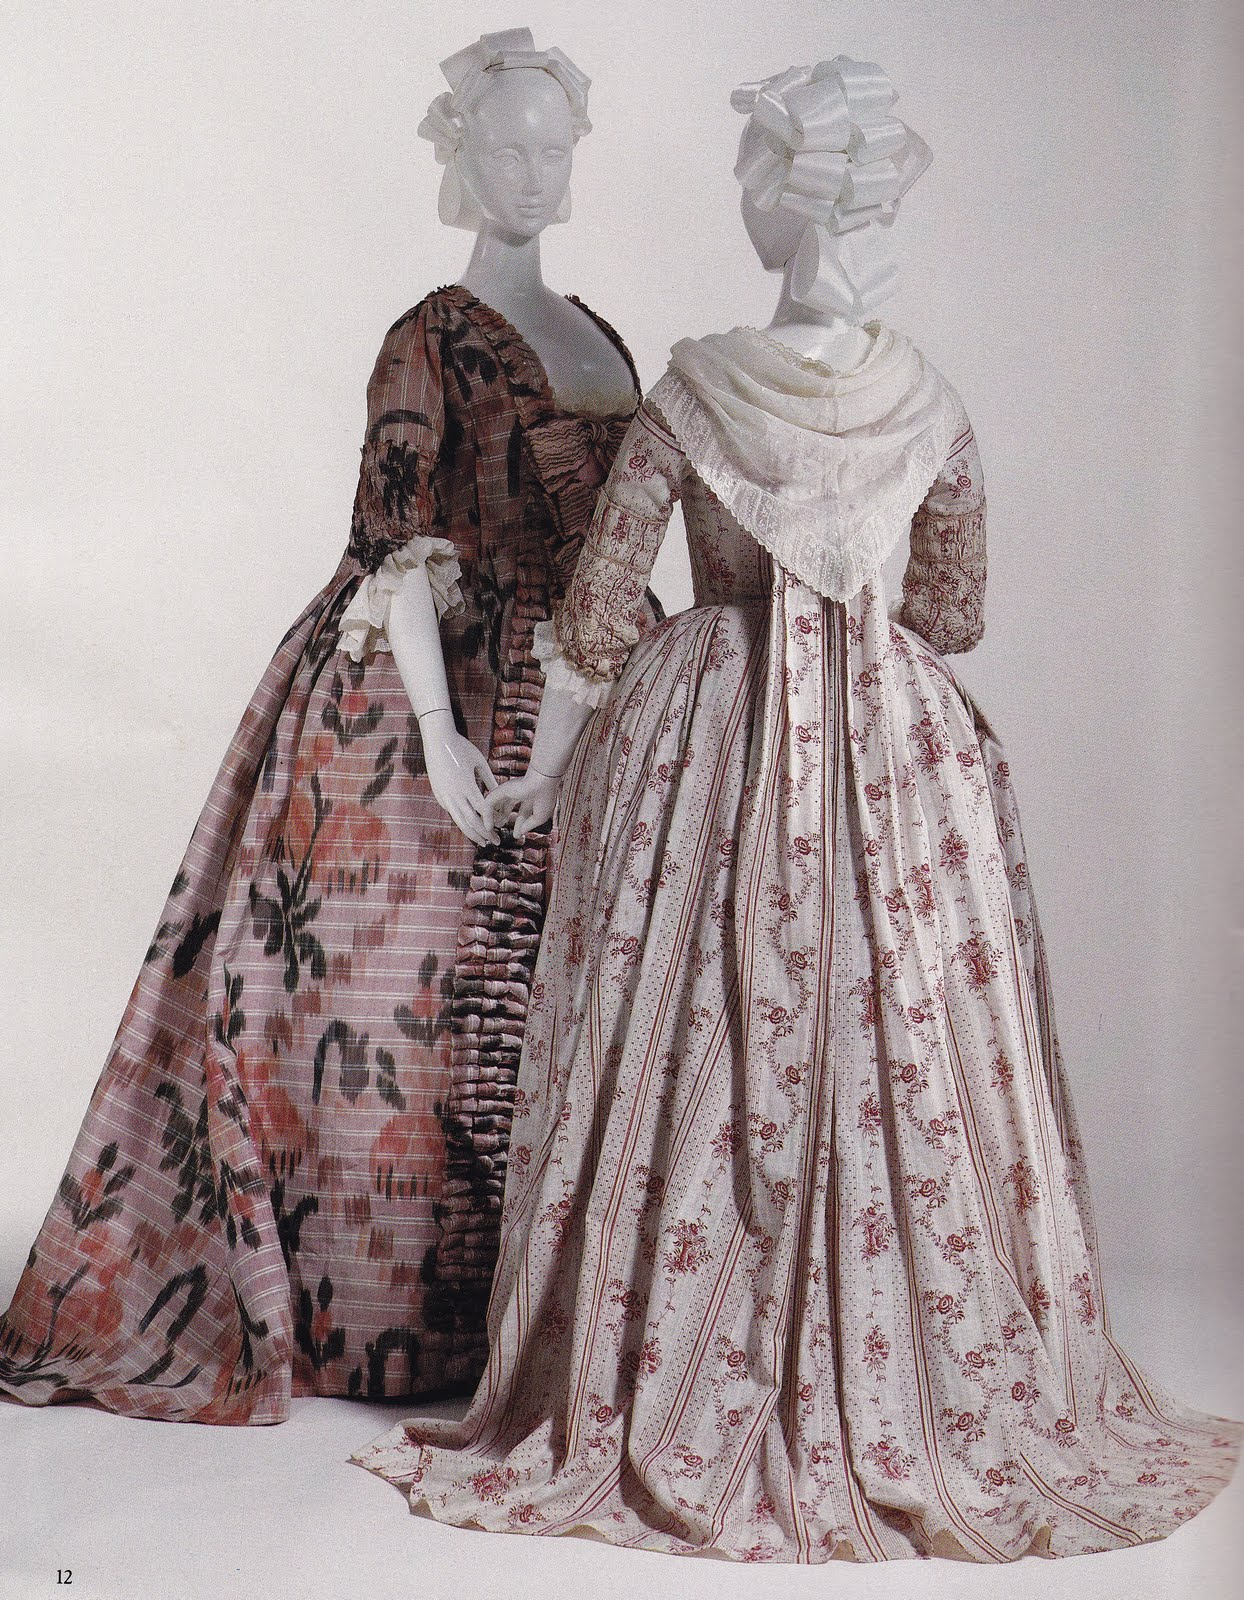 Women s Fashion After the Fall of New France (1760s to 1780s) All Fashion 18th century new france